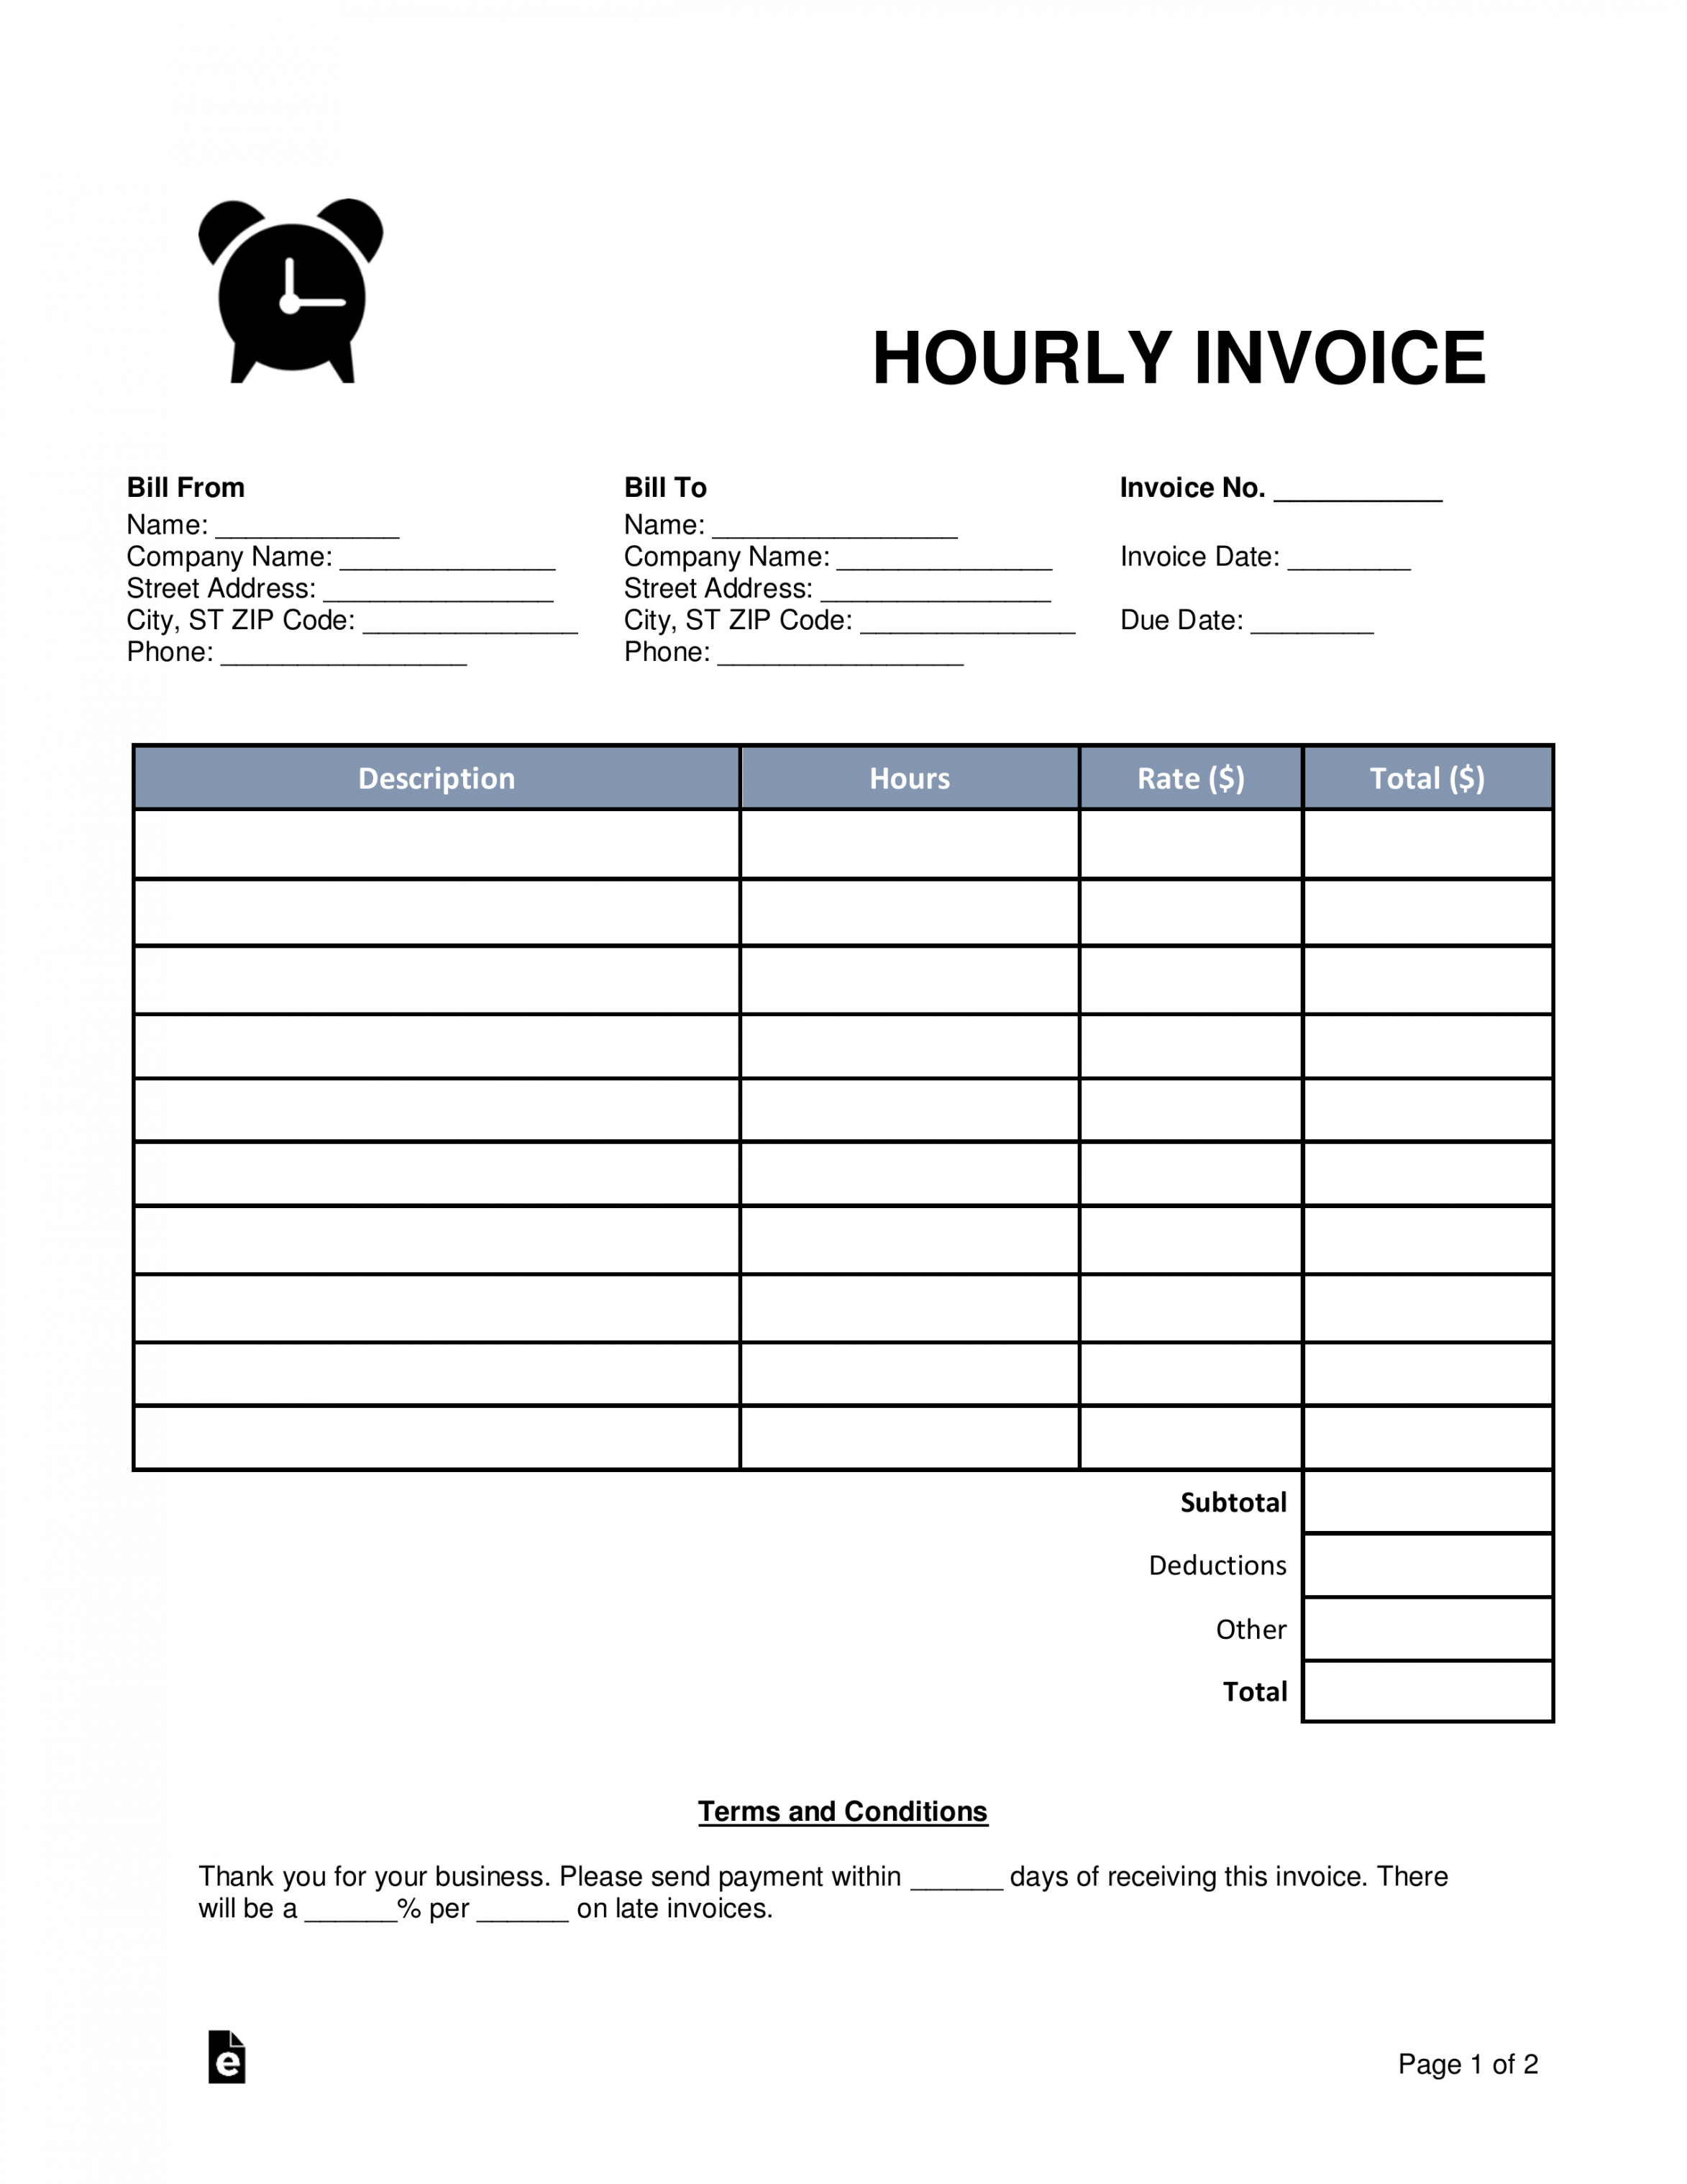 hourly invoice - togo.wpart.co freelance hourly invoice template example